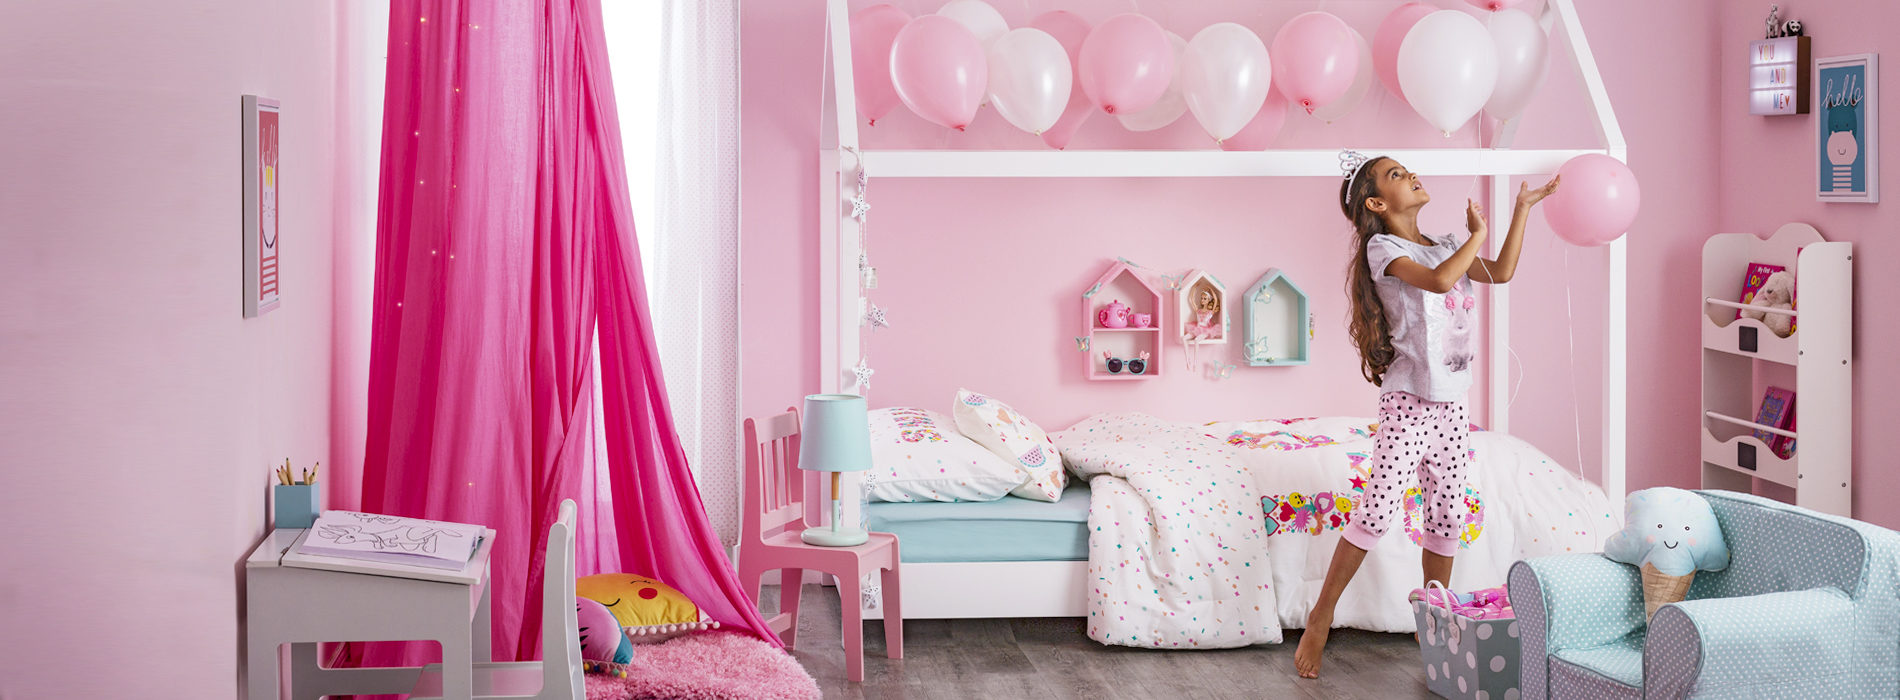 Top tips: easy ways to makeover your child's room